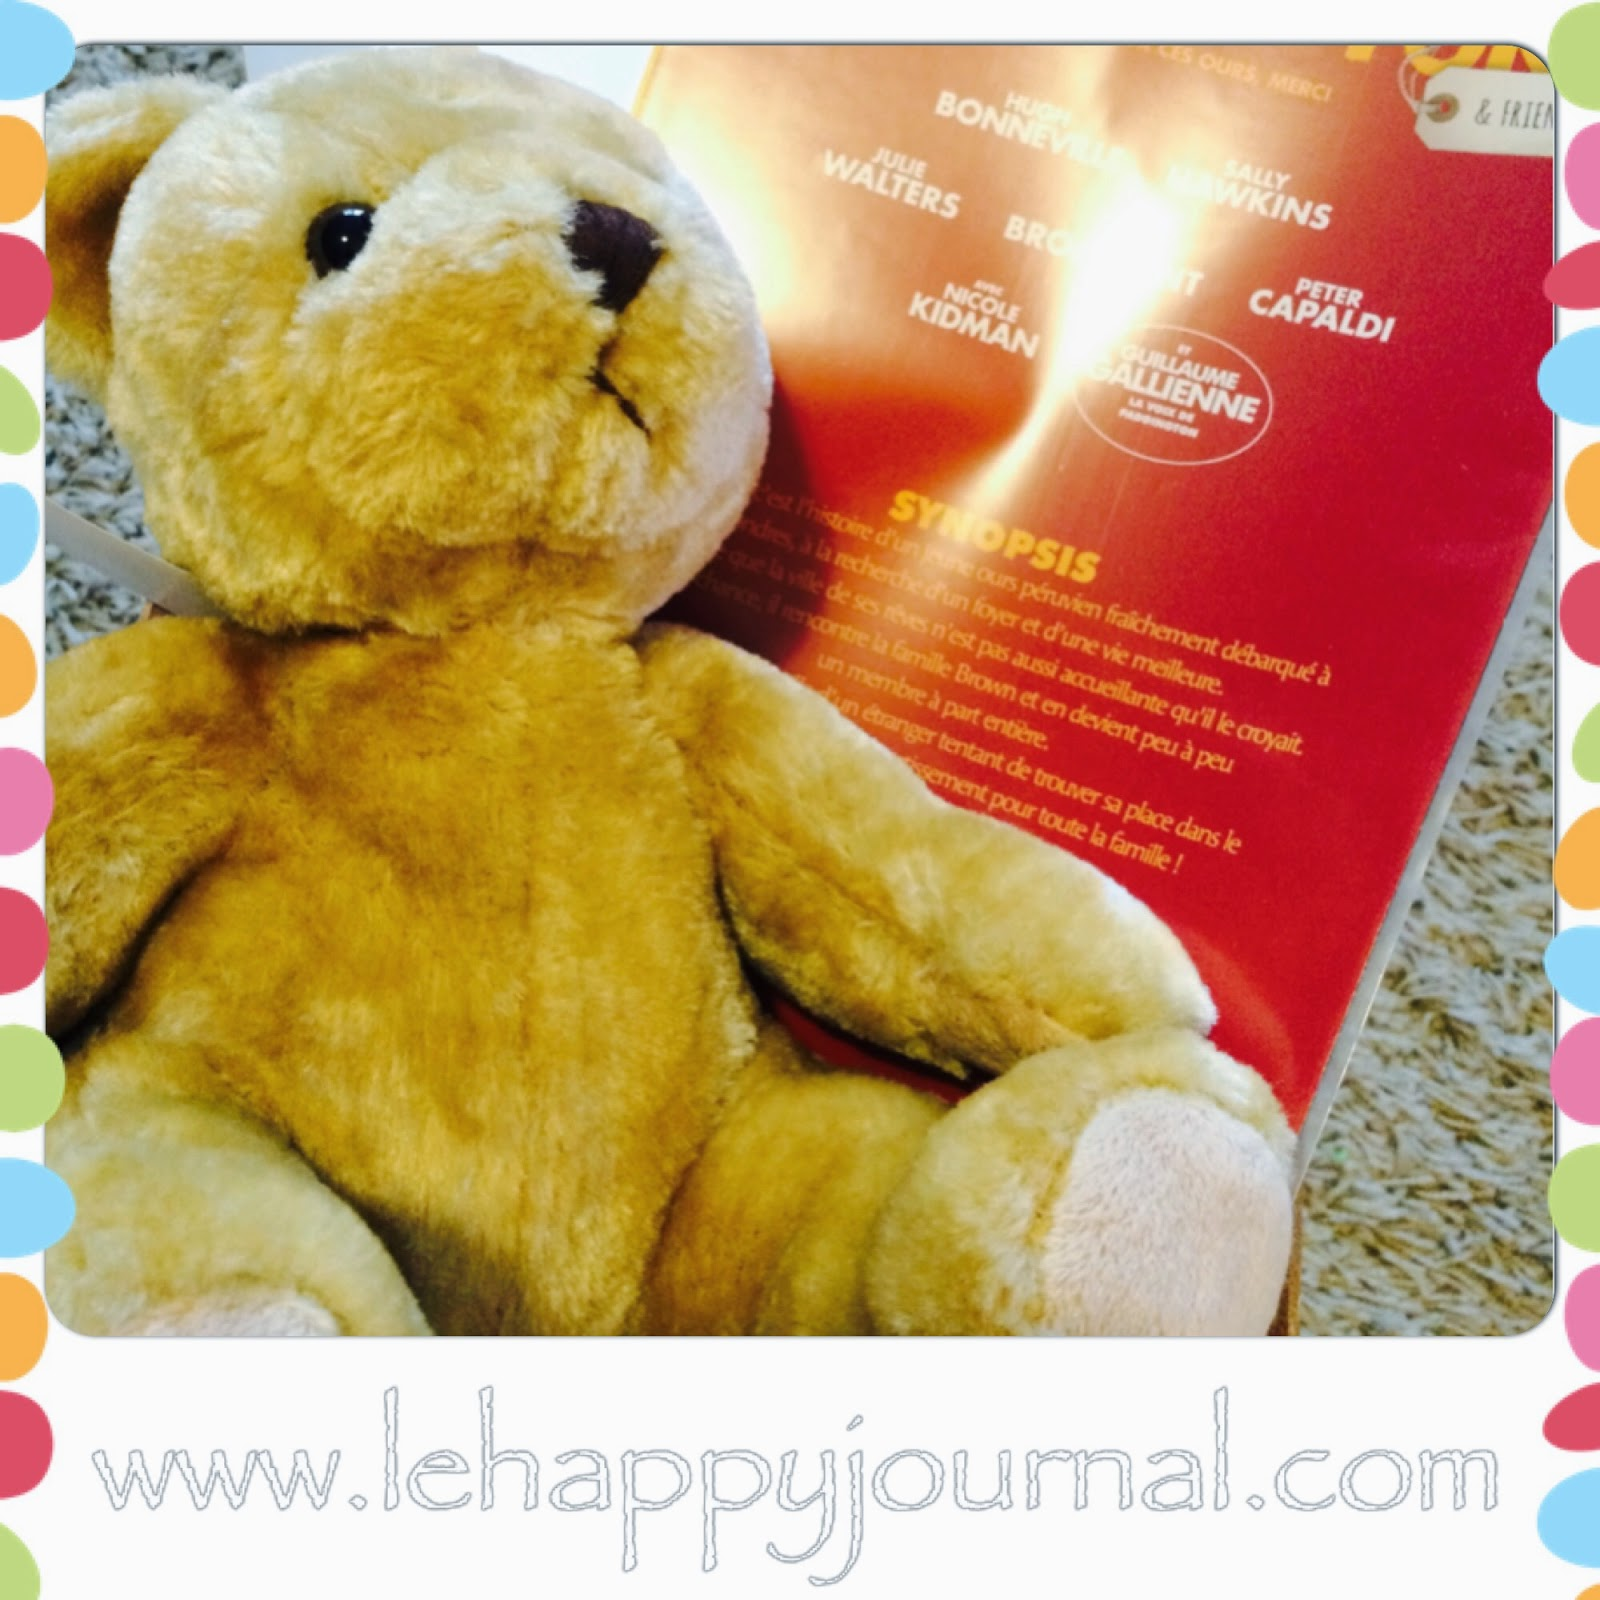 Paddington and Friends, initiative, ours, peluche, paddington, happy journal